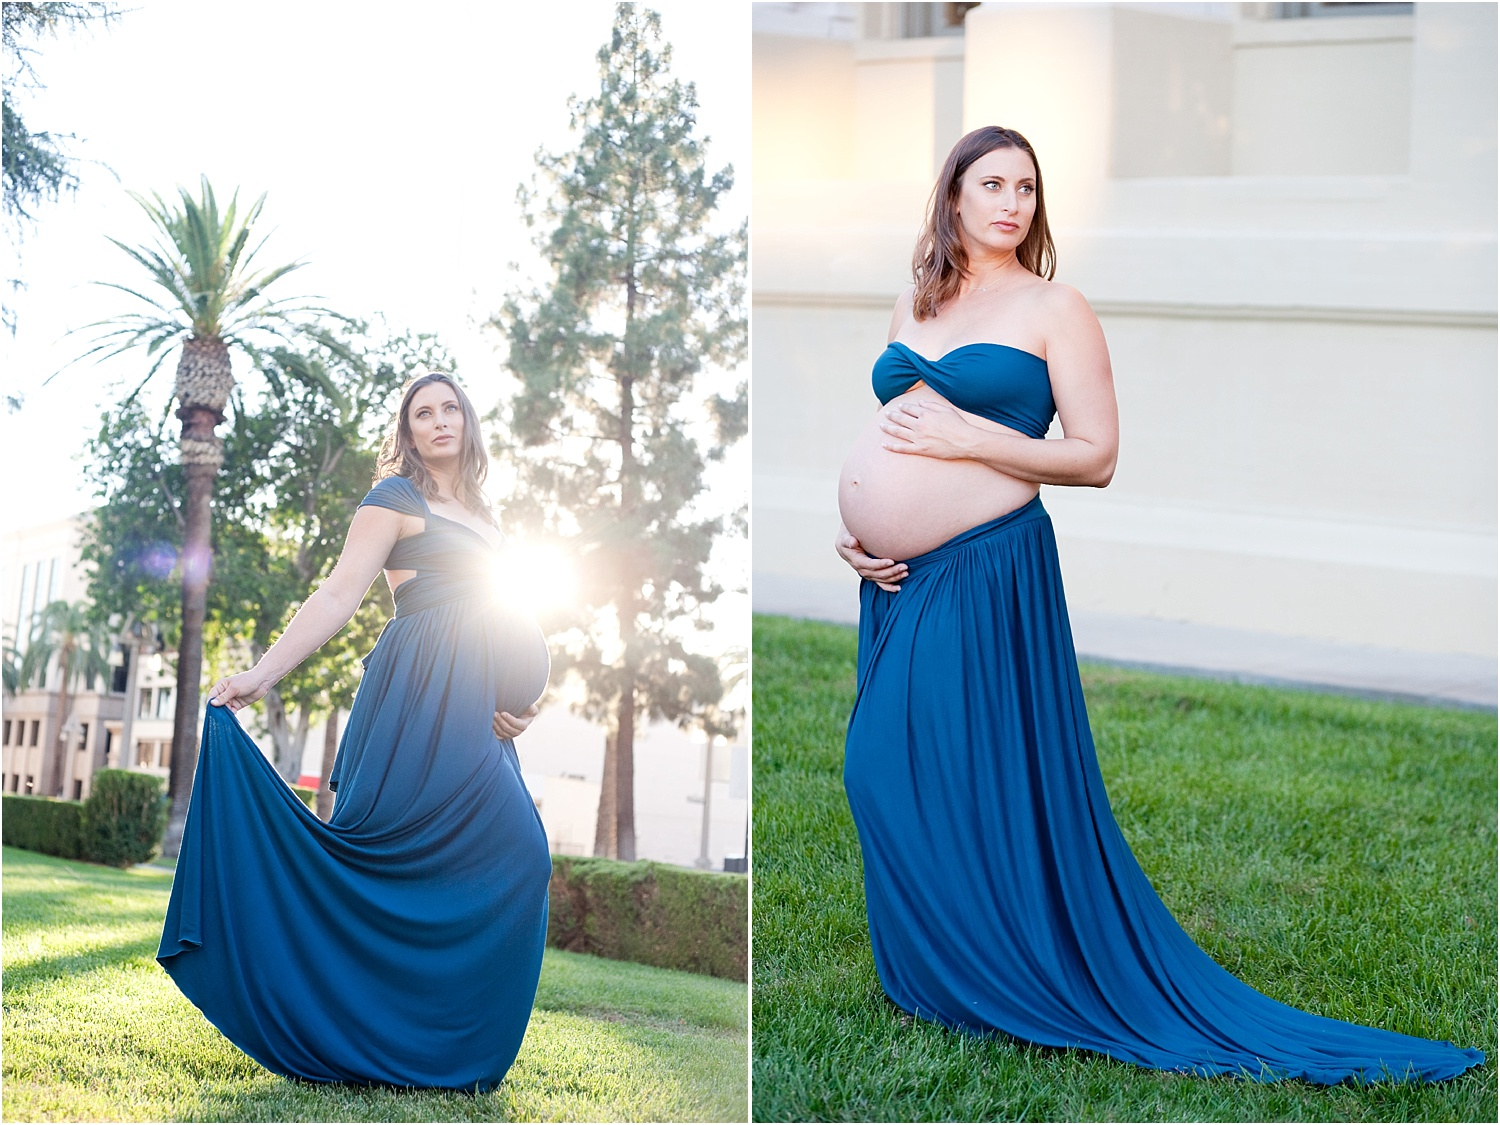 Maternity Session Tips For Better Client Experience